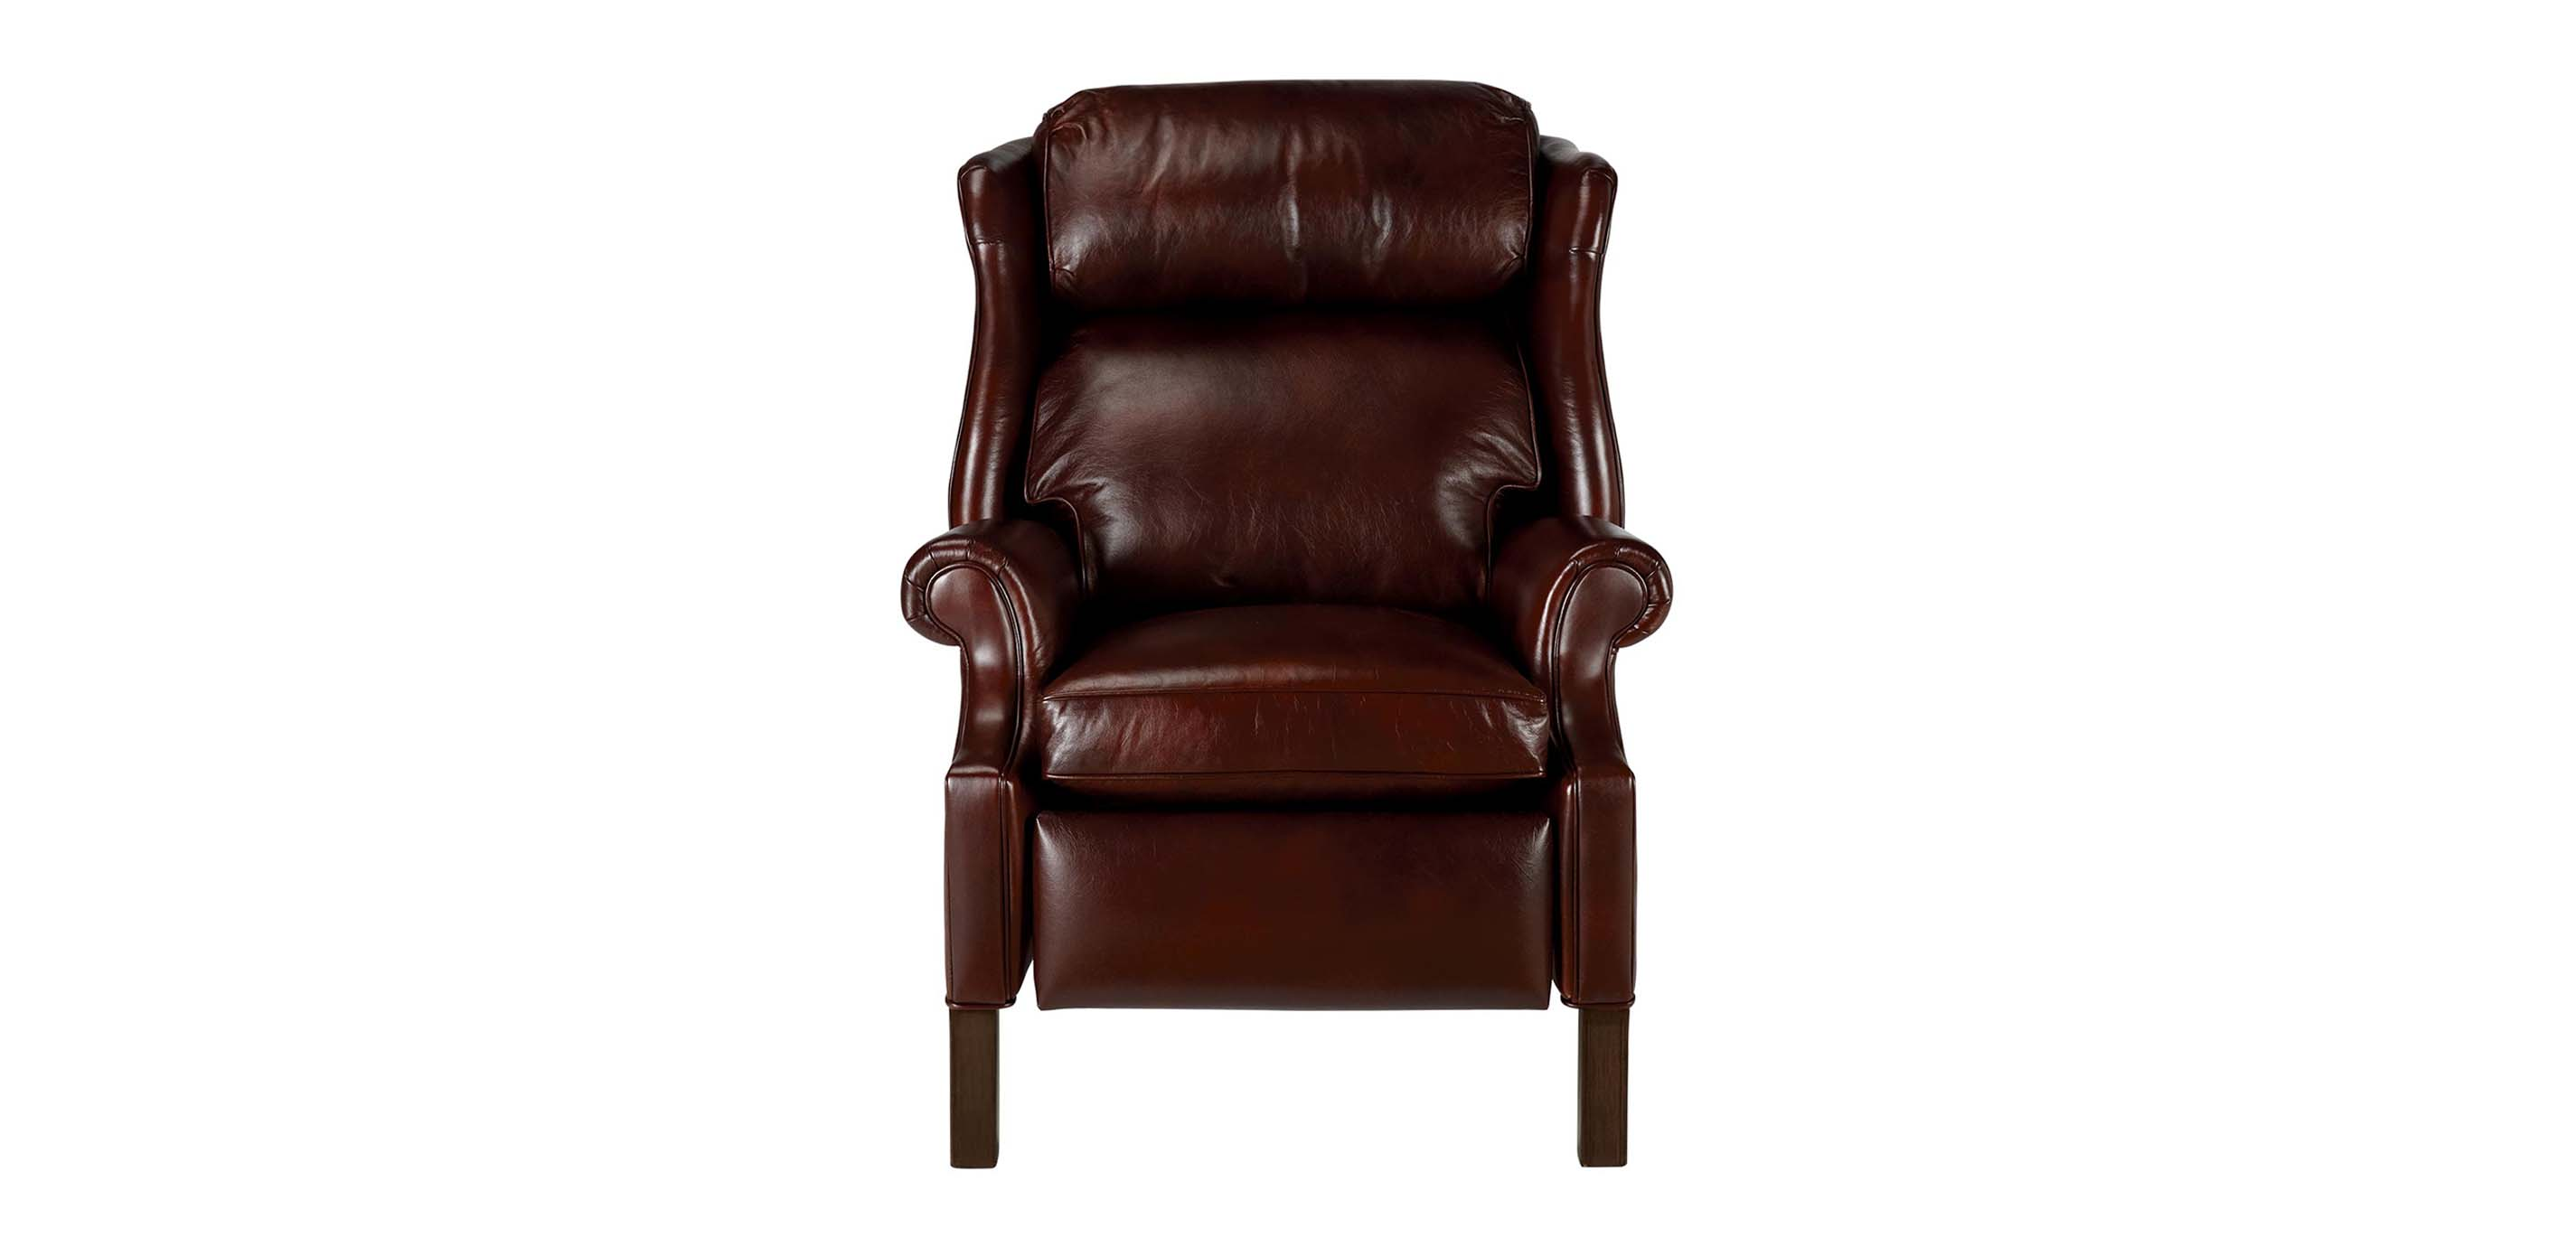 Townsend Leather Recliner Recliners